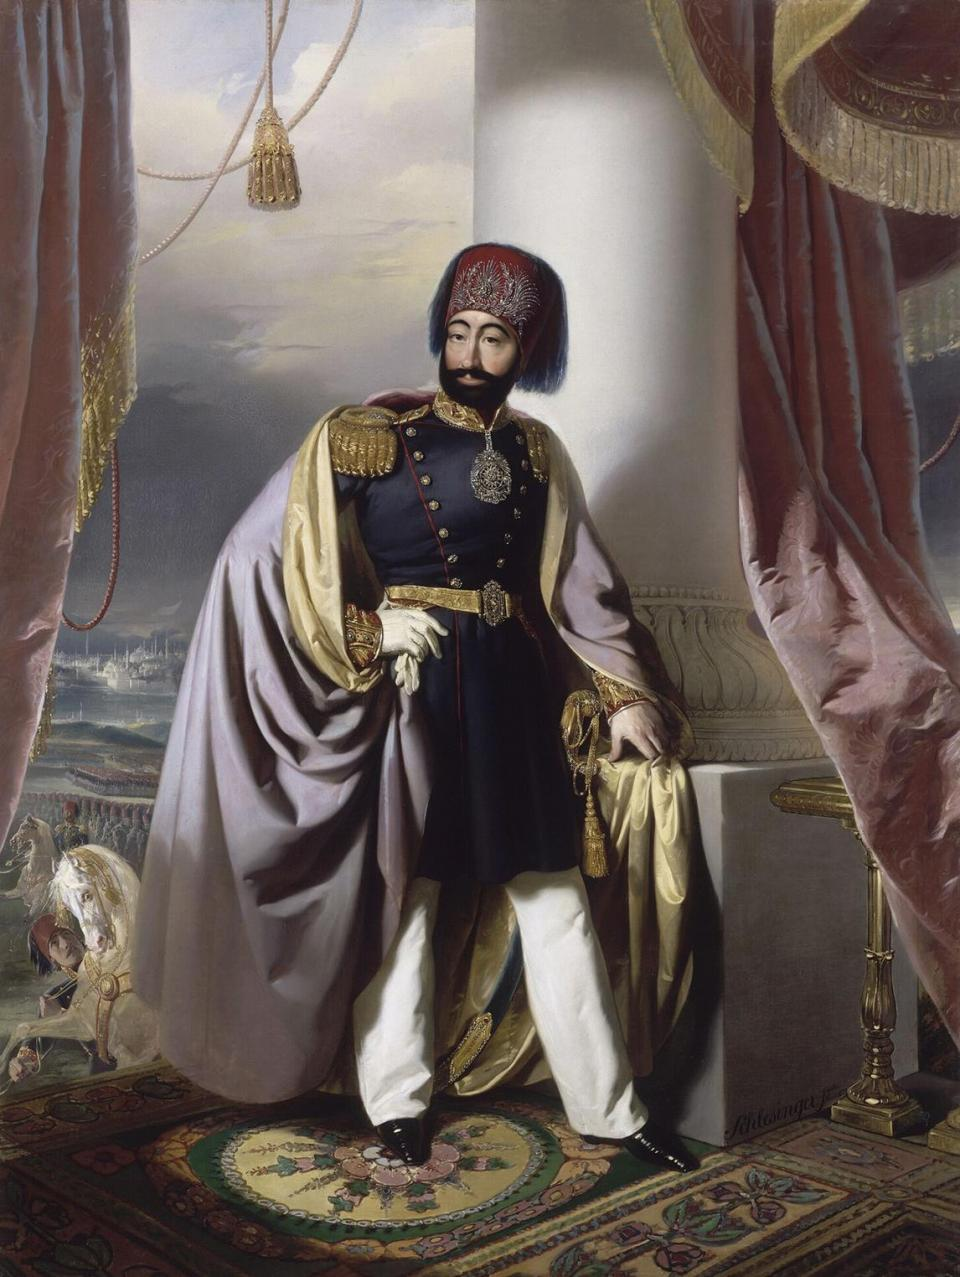 The Sultan of the Ottoman Empire, Mahmud II, as portrayed by Henry-Guillaume Schlesinger.